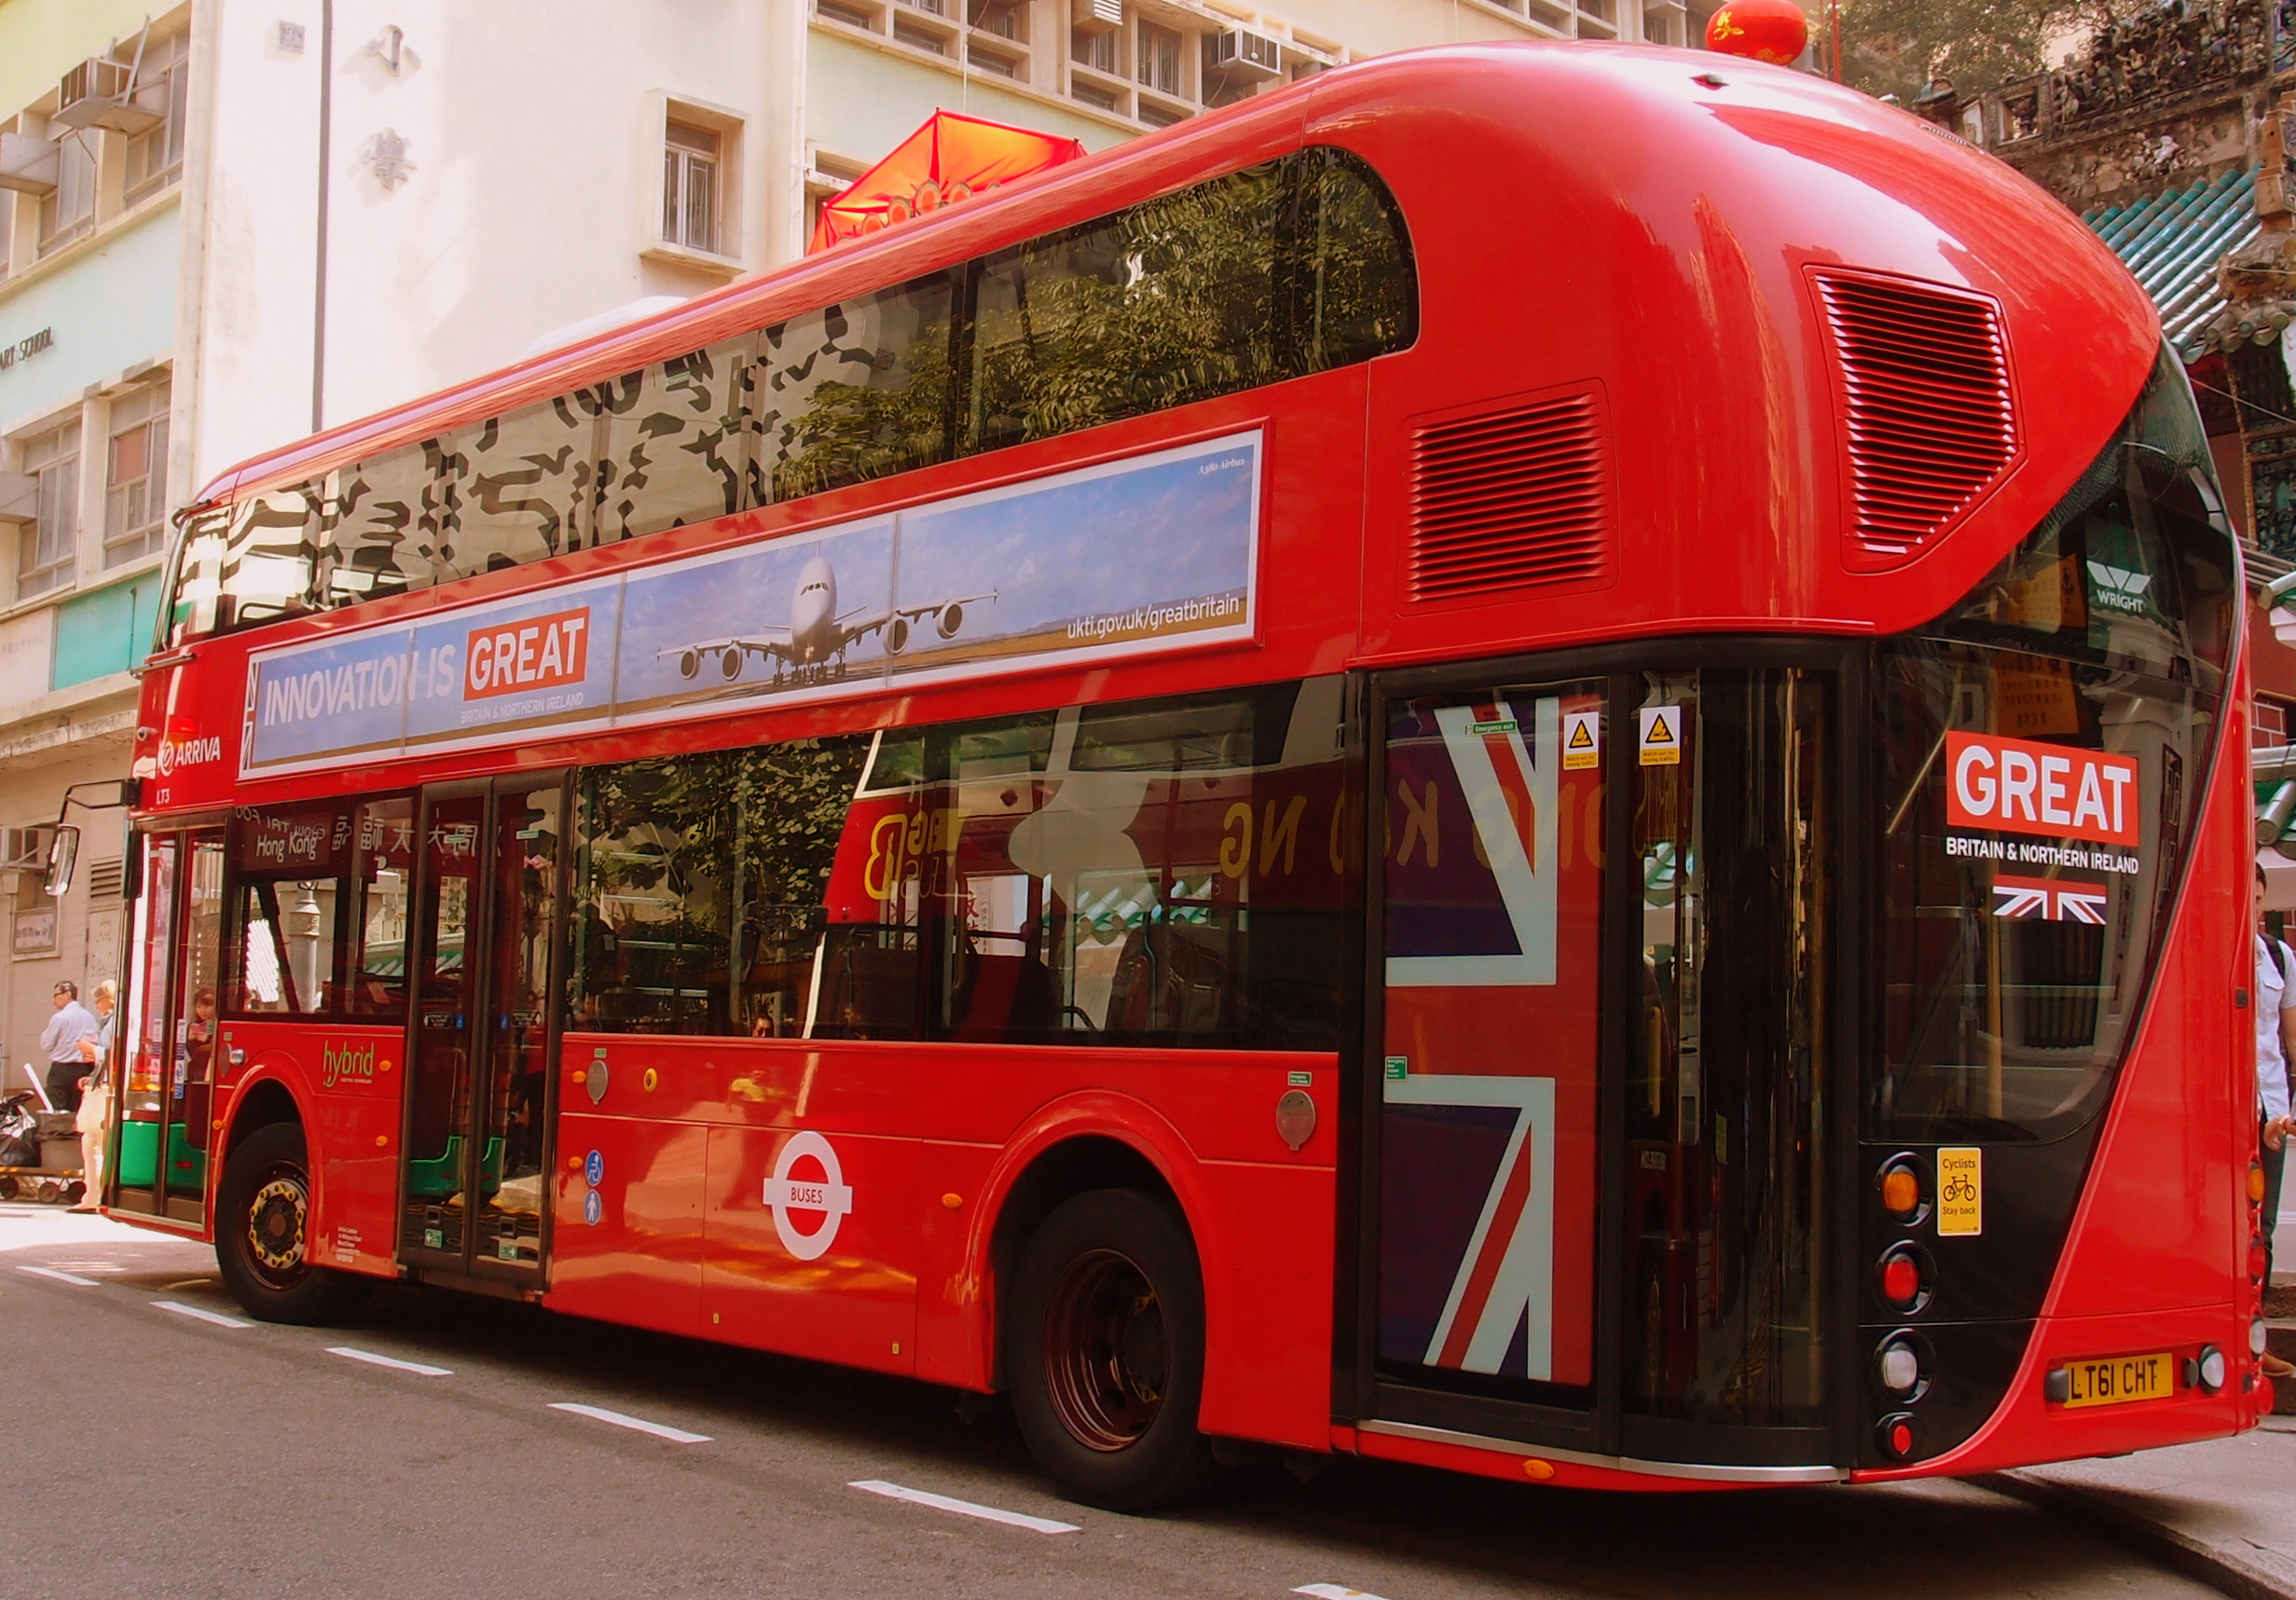 I love this bus which is from London, we should have this design here... it is pretty darn cool and I spotted it outside the Man Mo Temple on Hollywood Road